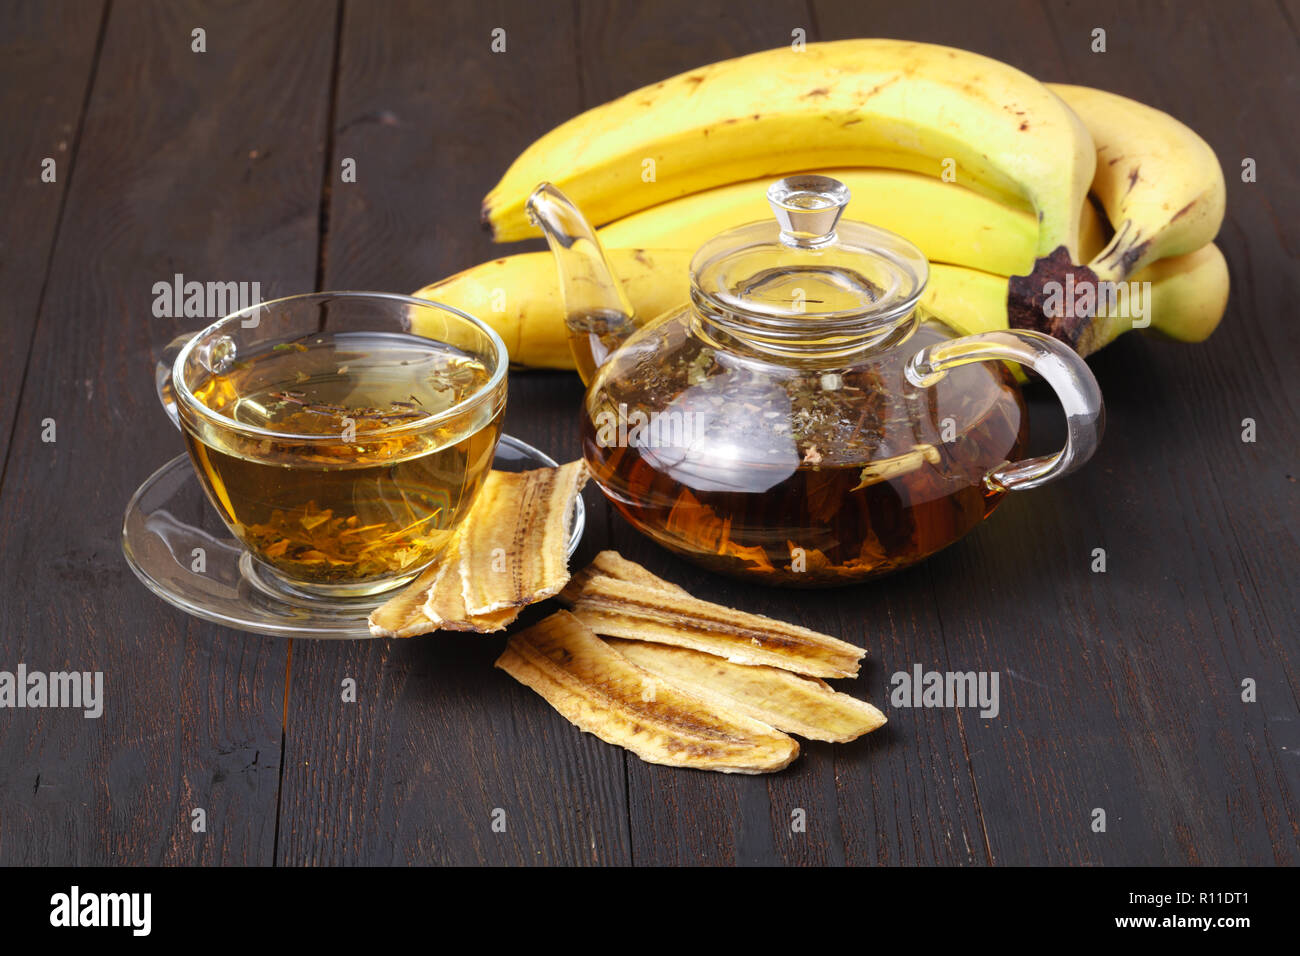 Dried banana, dried fruit on wooden background, Healthy food Stock Photo